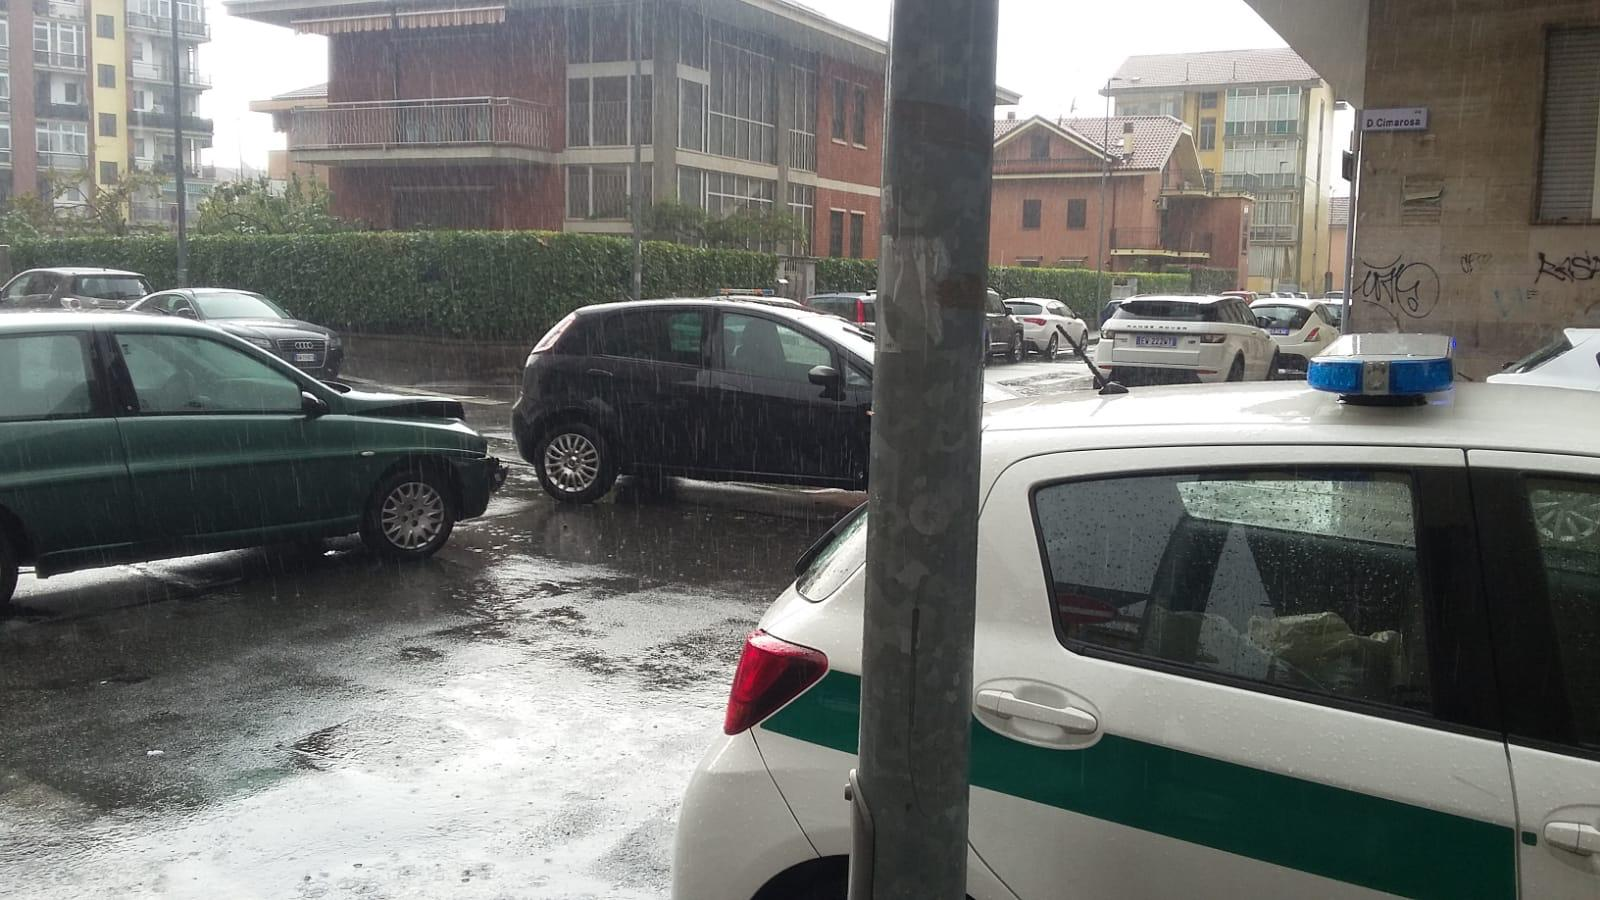 NICHELINO – Incidente in via Cimarosa